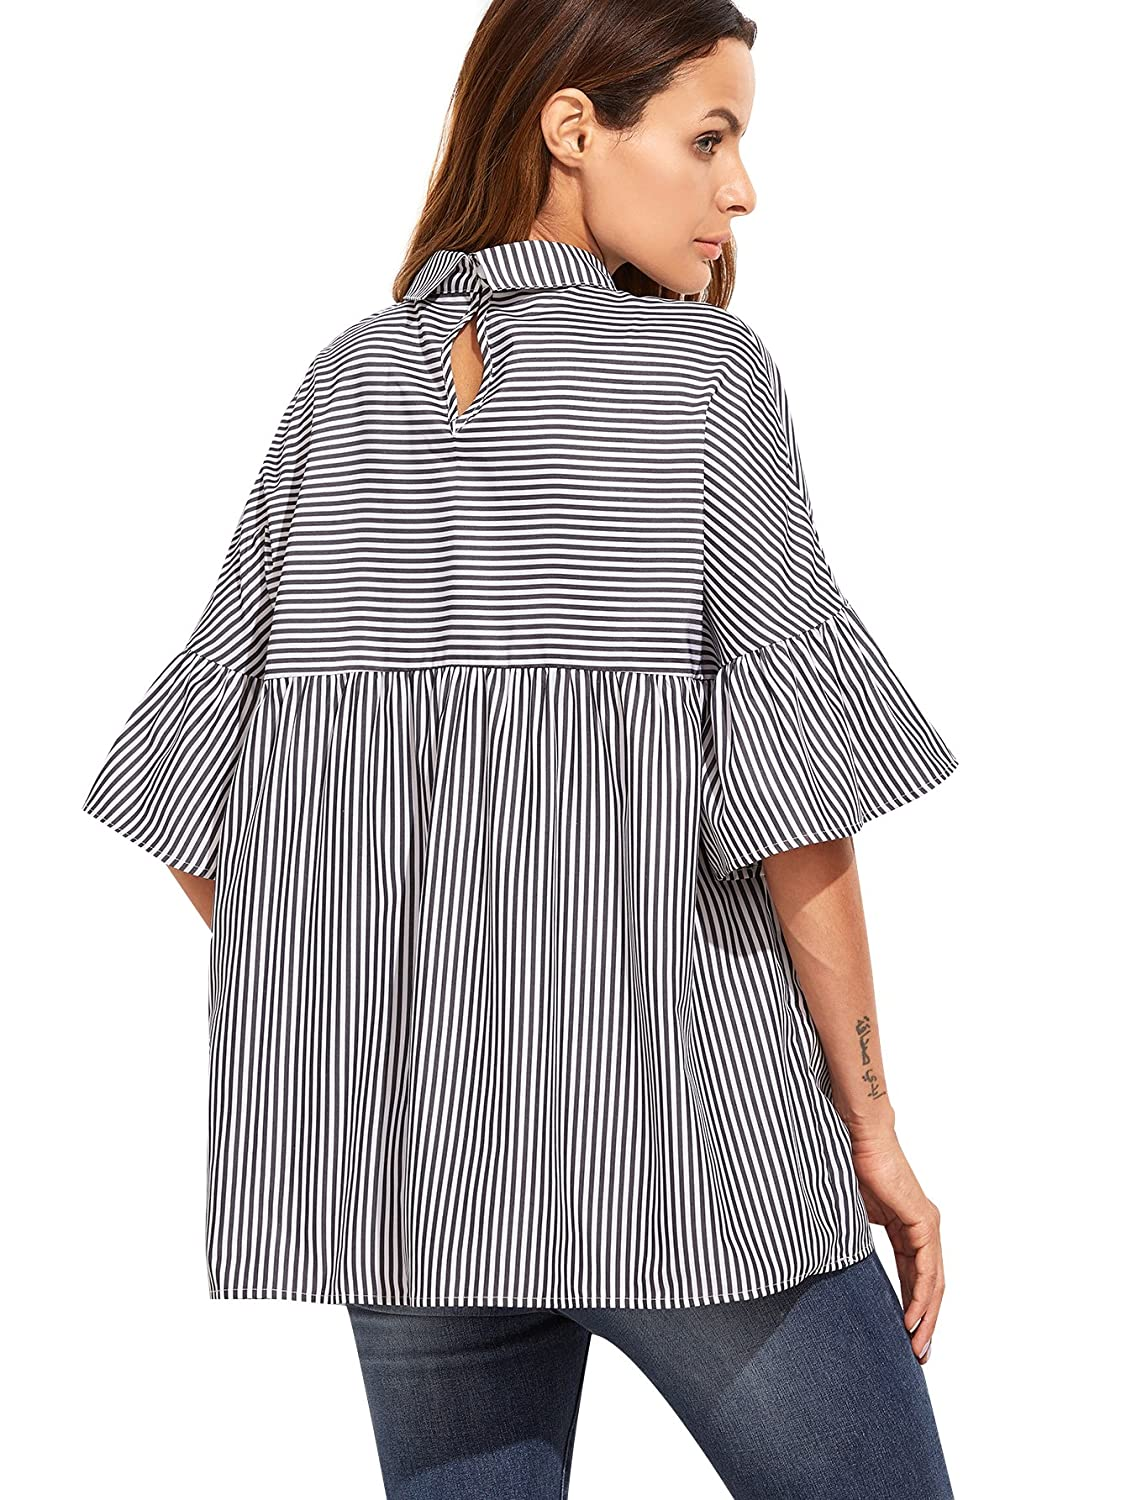 9bf60445fad SheIn Women s Oversized Striped Ruffle Half Sleeve Collared Blouse at  Amazon Women s Clothing store